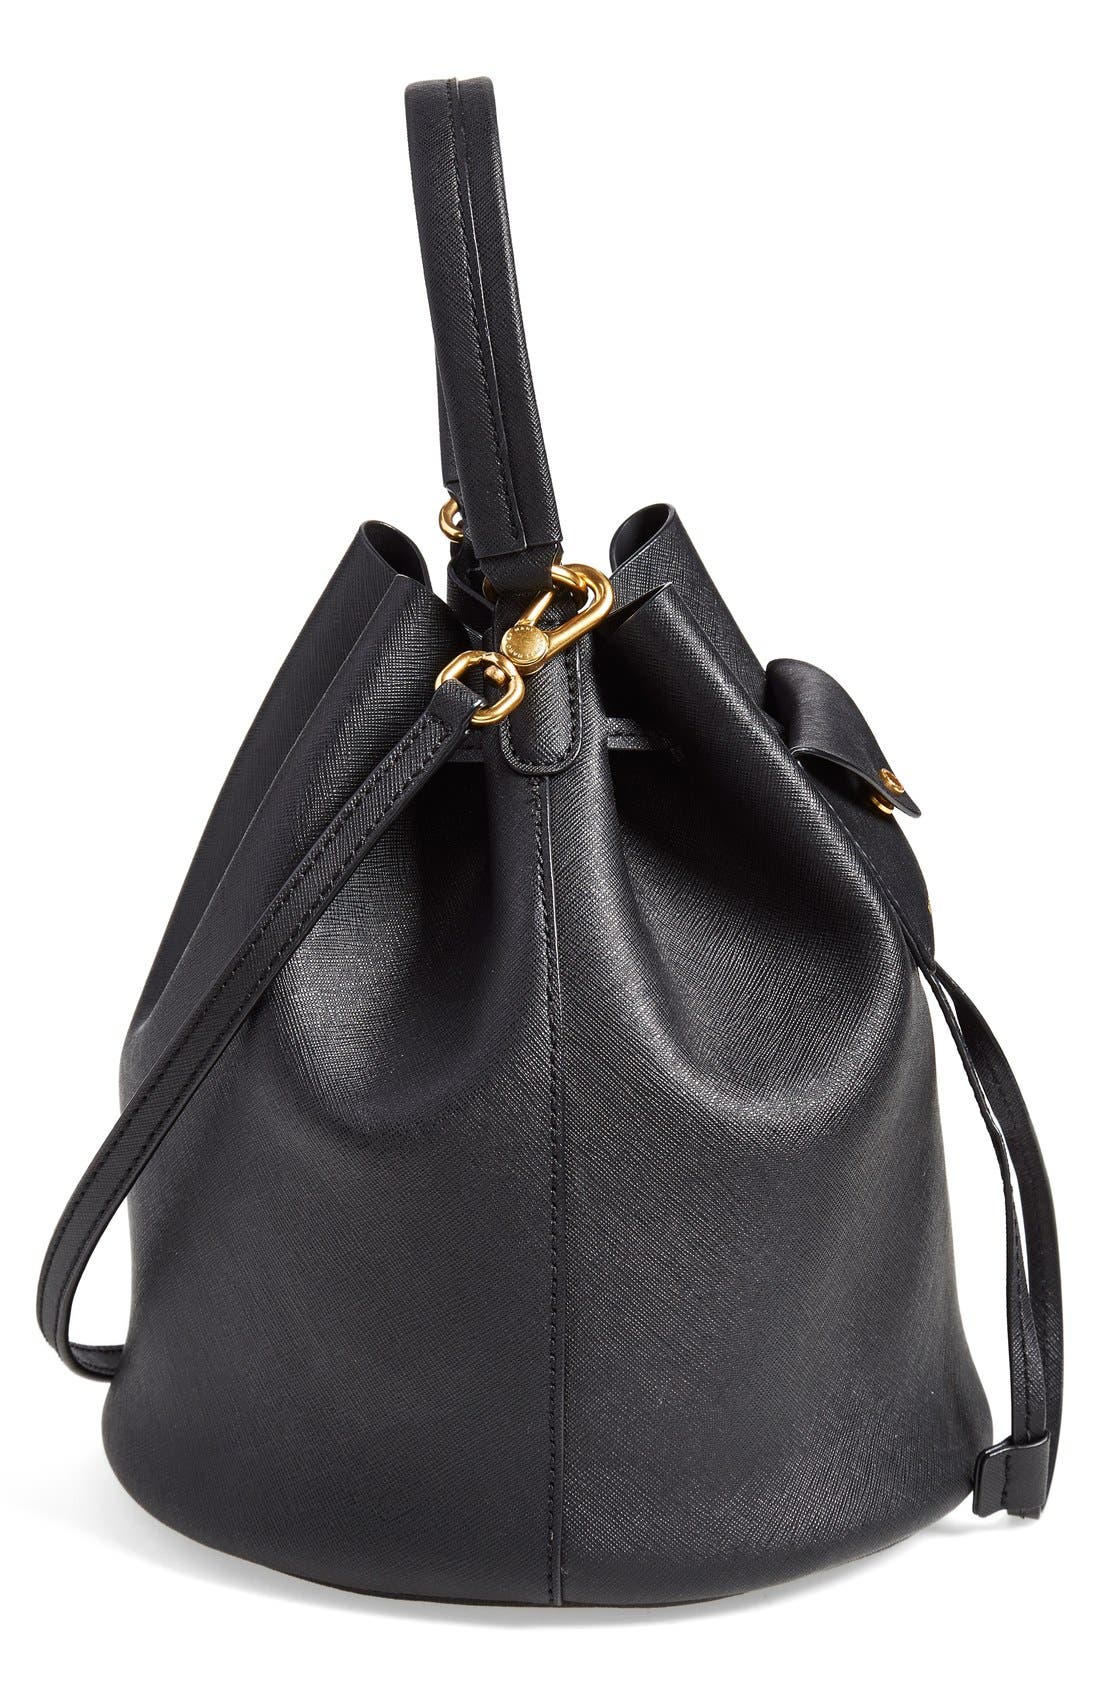 MARC BY MARC JACOBS 'Metropoli' Leather Bucket Bag,                             Alternate thumbnail 2, color,                             001